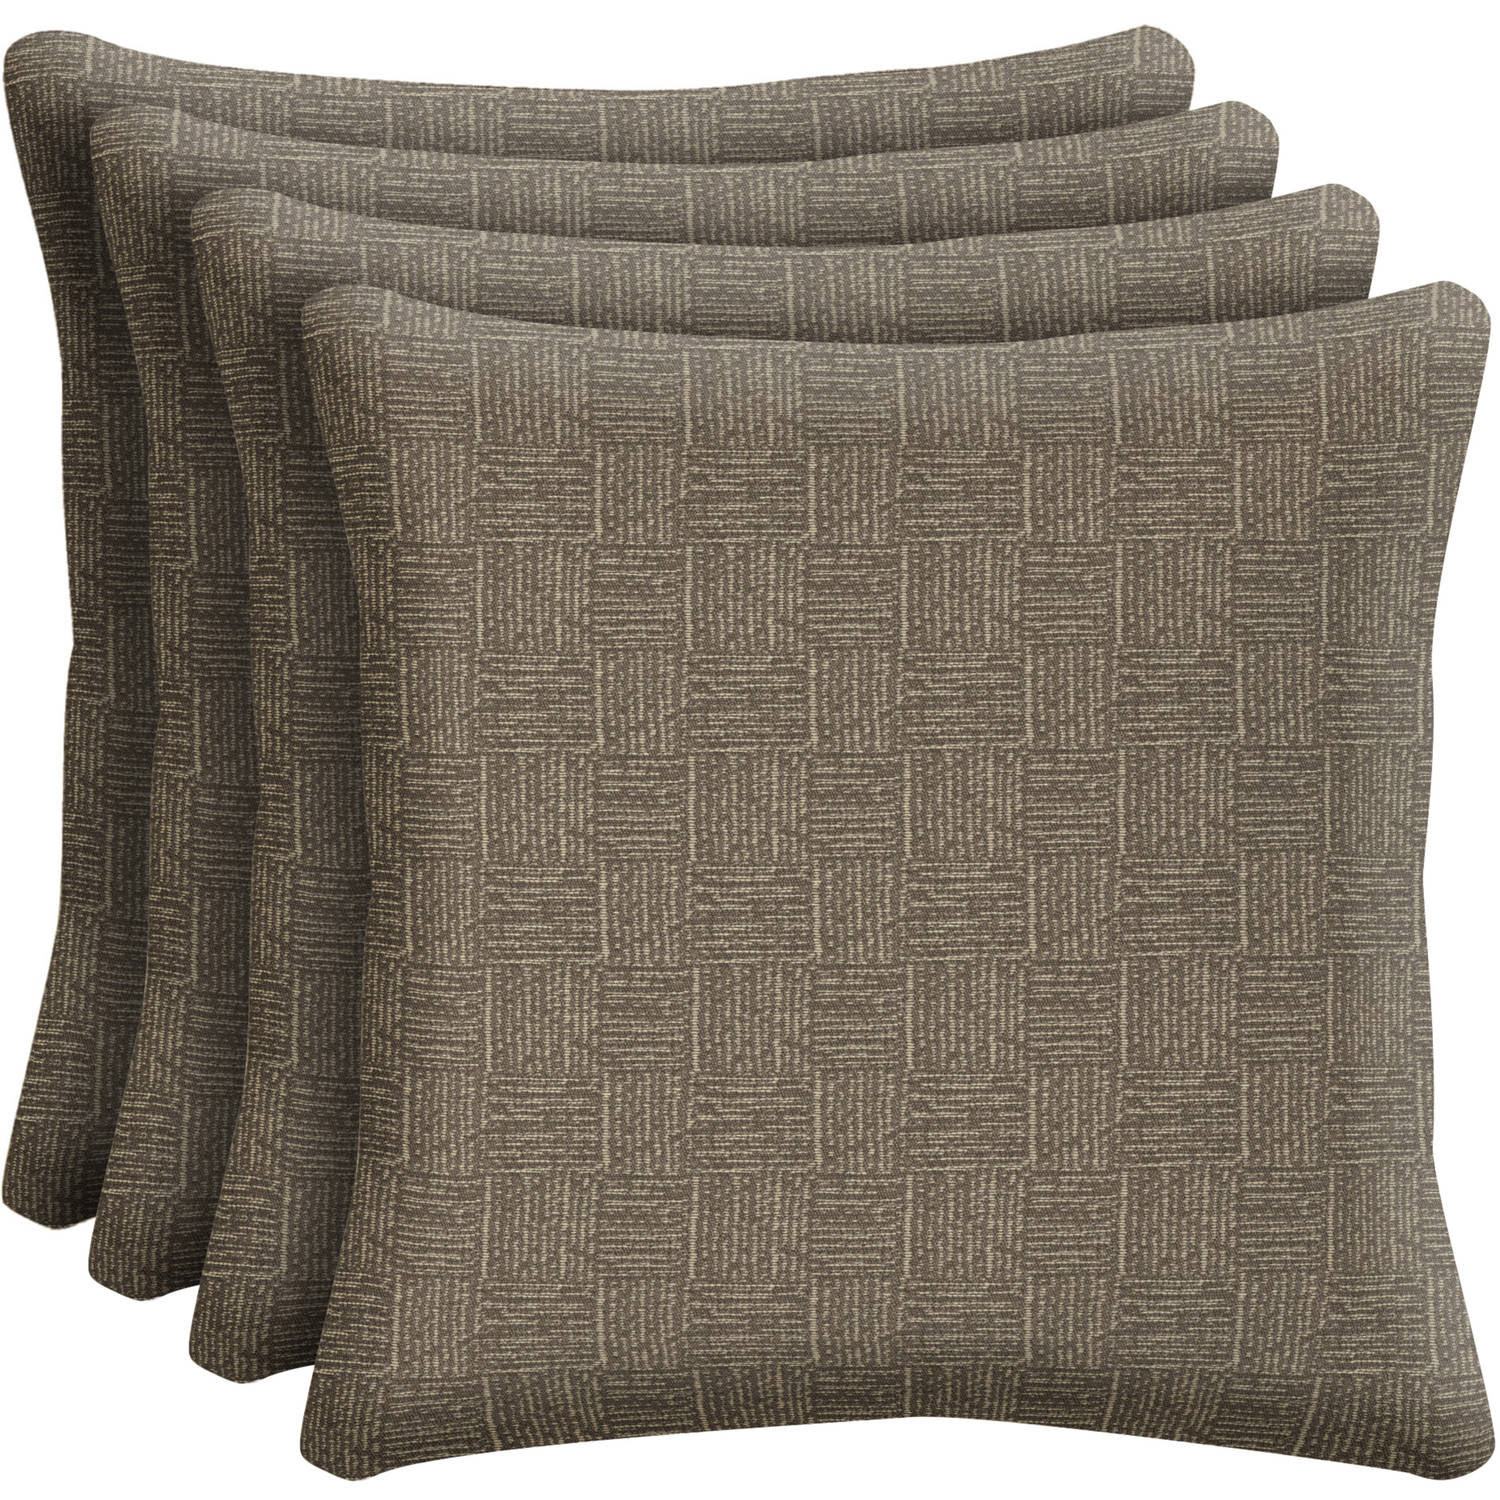 "Arden Outdoors Brown Woven 16"" Square Toss Pillow, Set of 4"